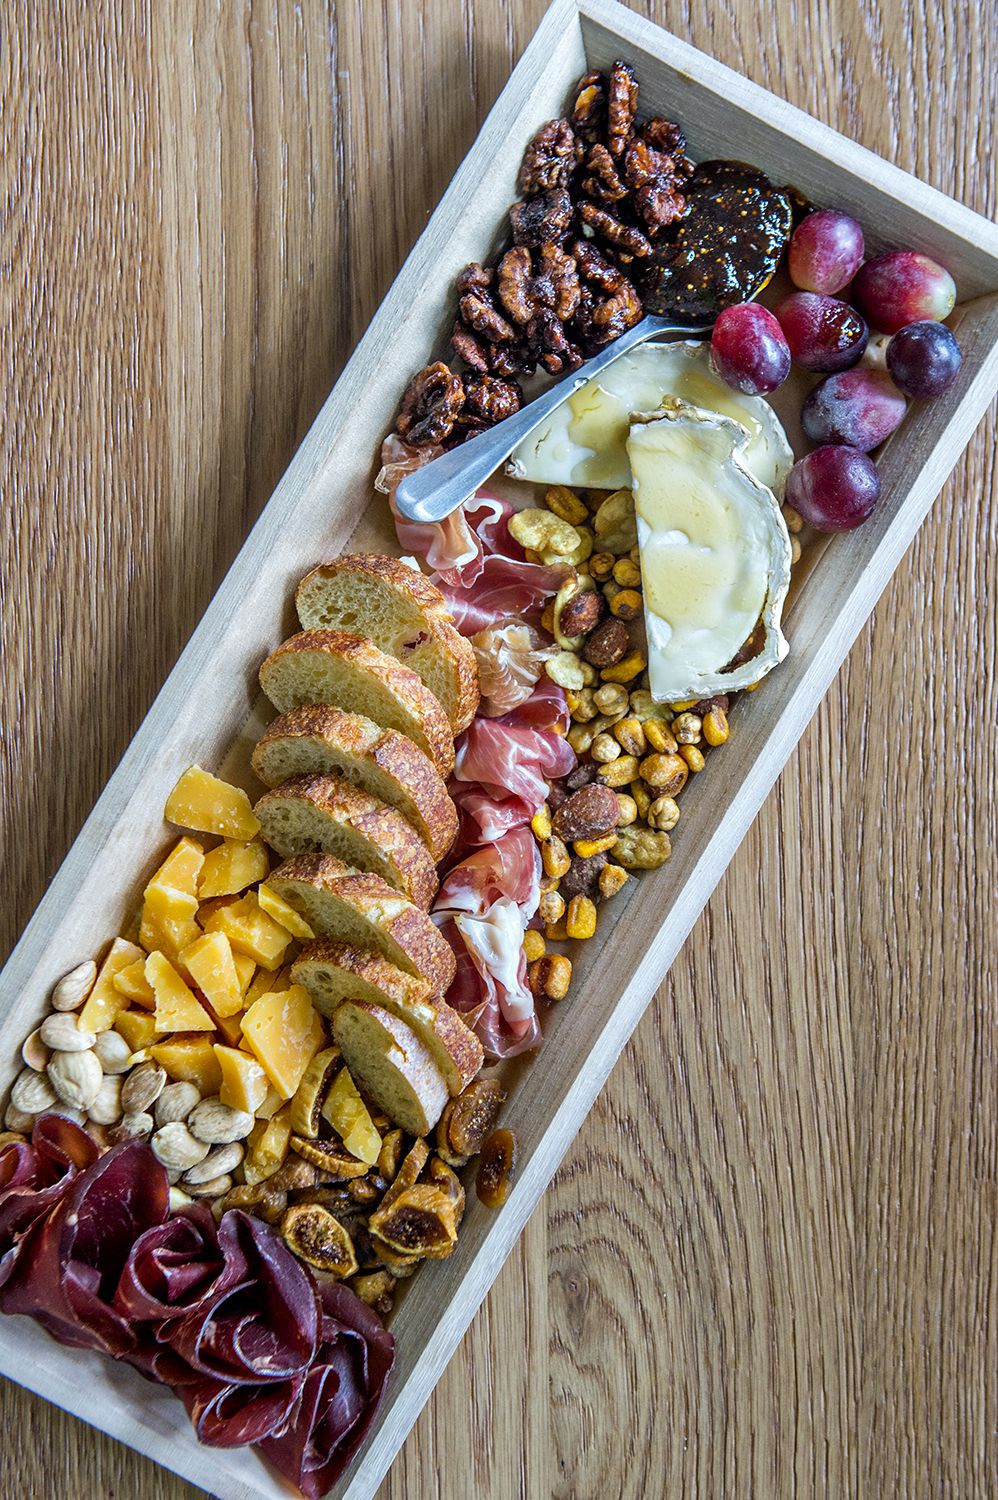 Mondo Mini's charcuterie board with a curated selection of cheese and charcuterie, bread, olives, nuts, and fruit.